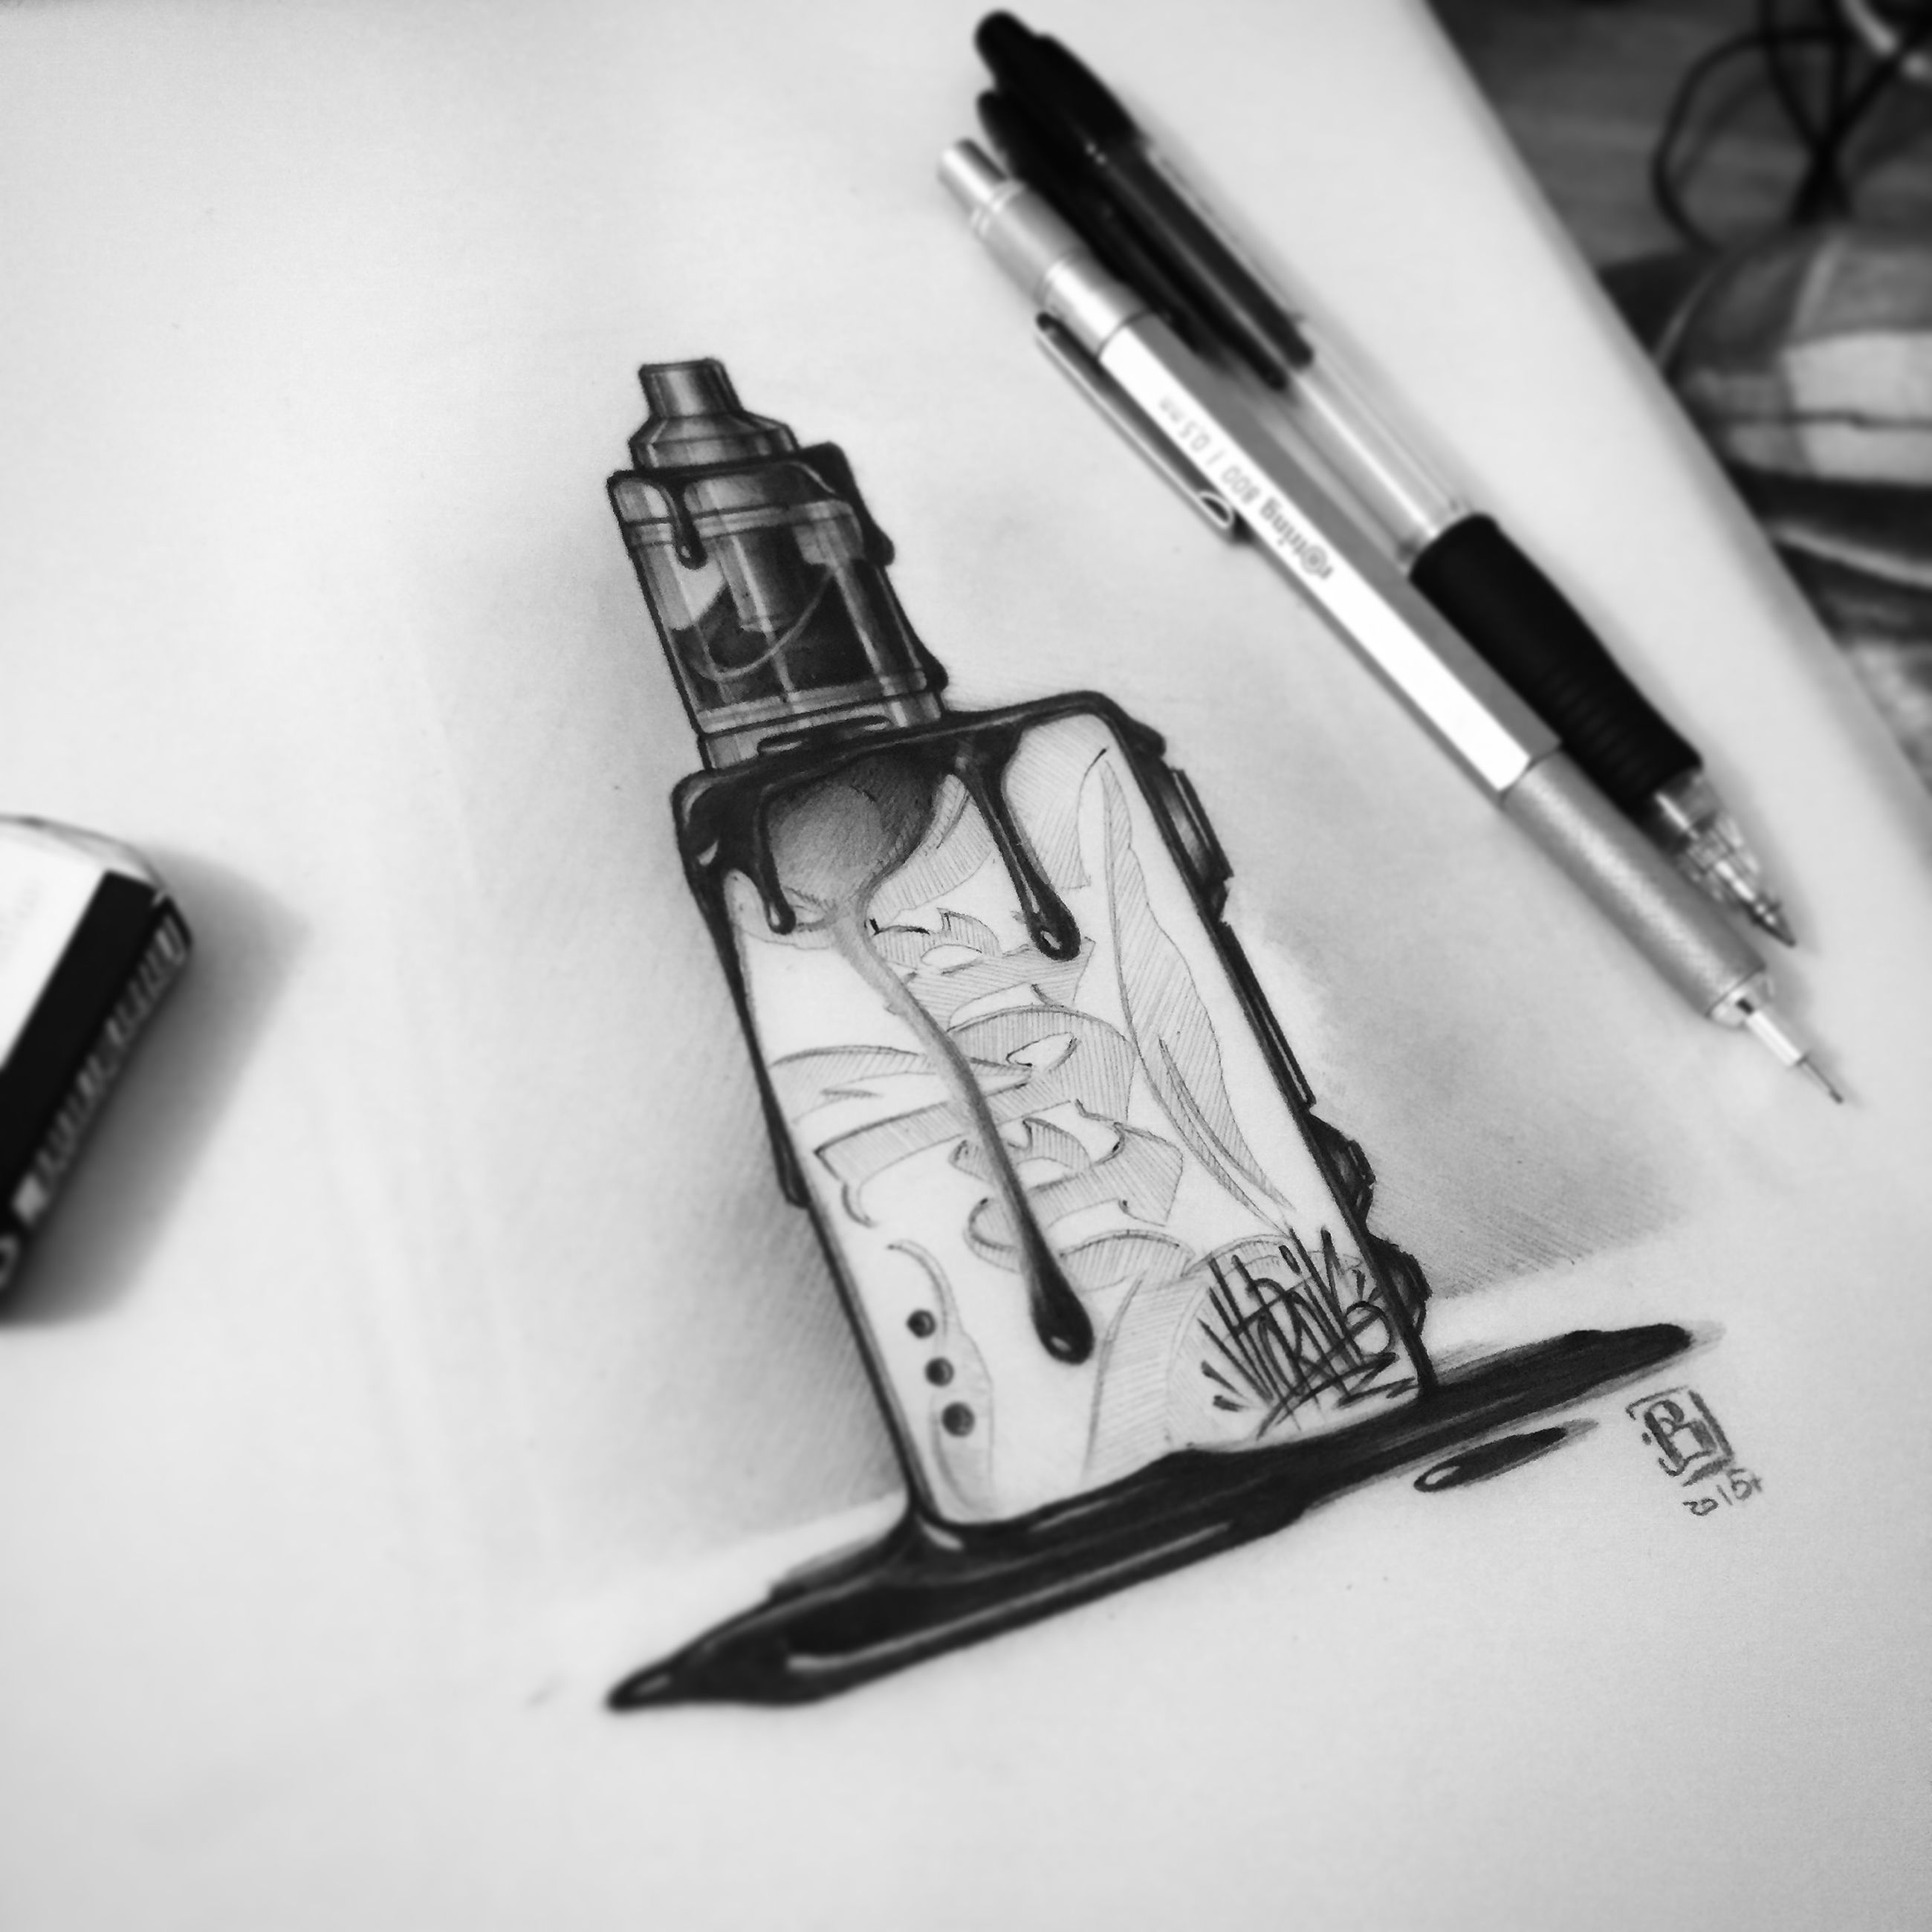 indoors, still life, table, close-up, music, pen, book, single object, education, high angle view, musical instrument, arts culture and entertainment, no people, paper, studio shot, technology, pencil, home interior, equipment, old-fashioned